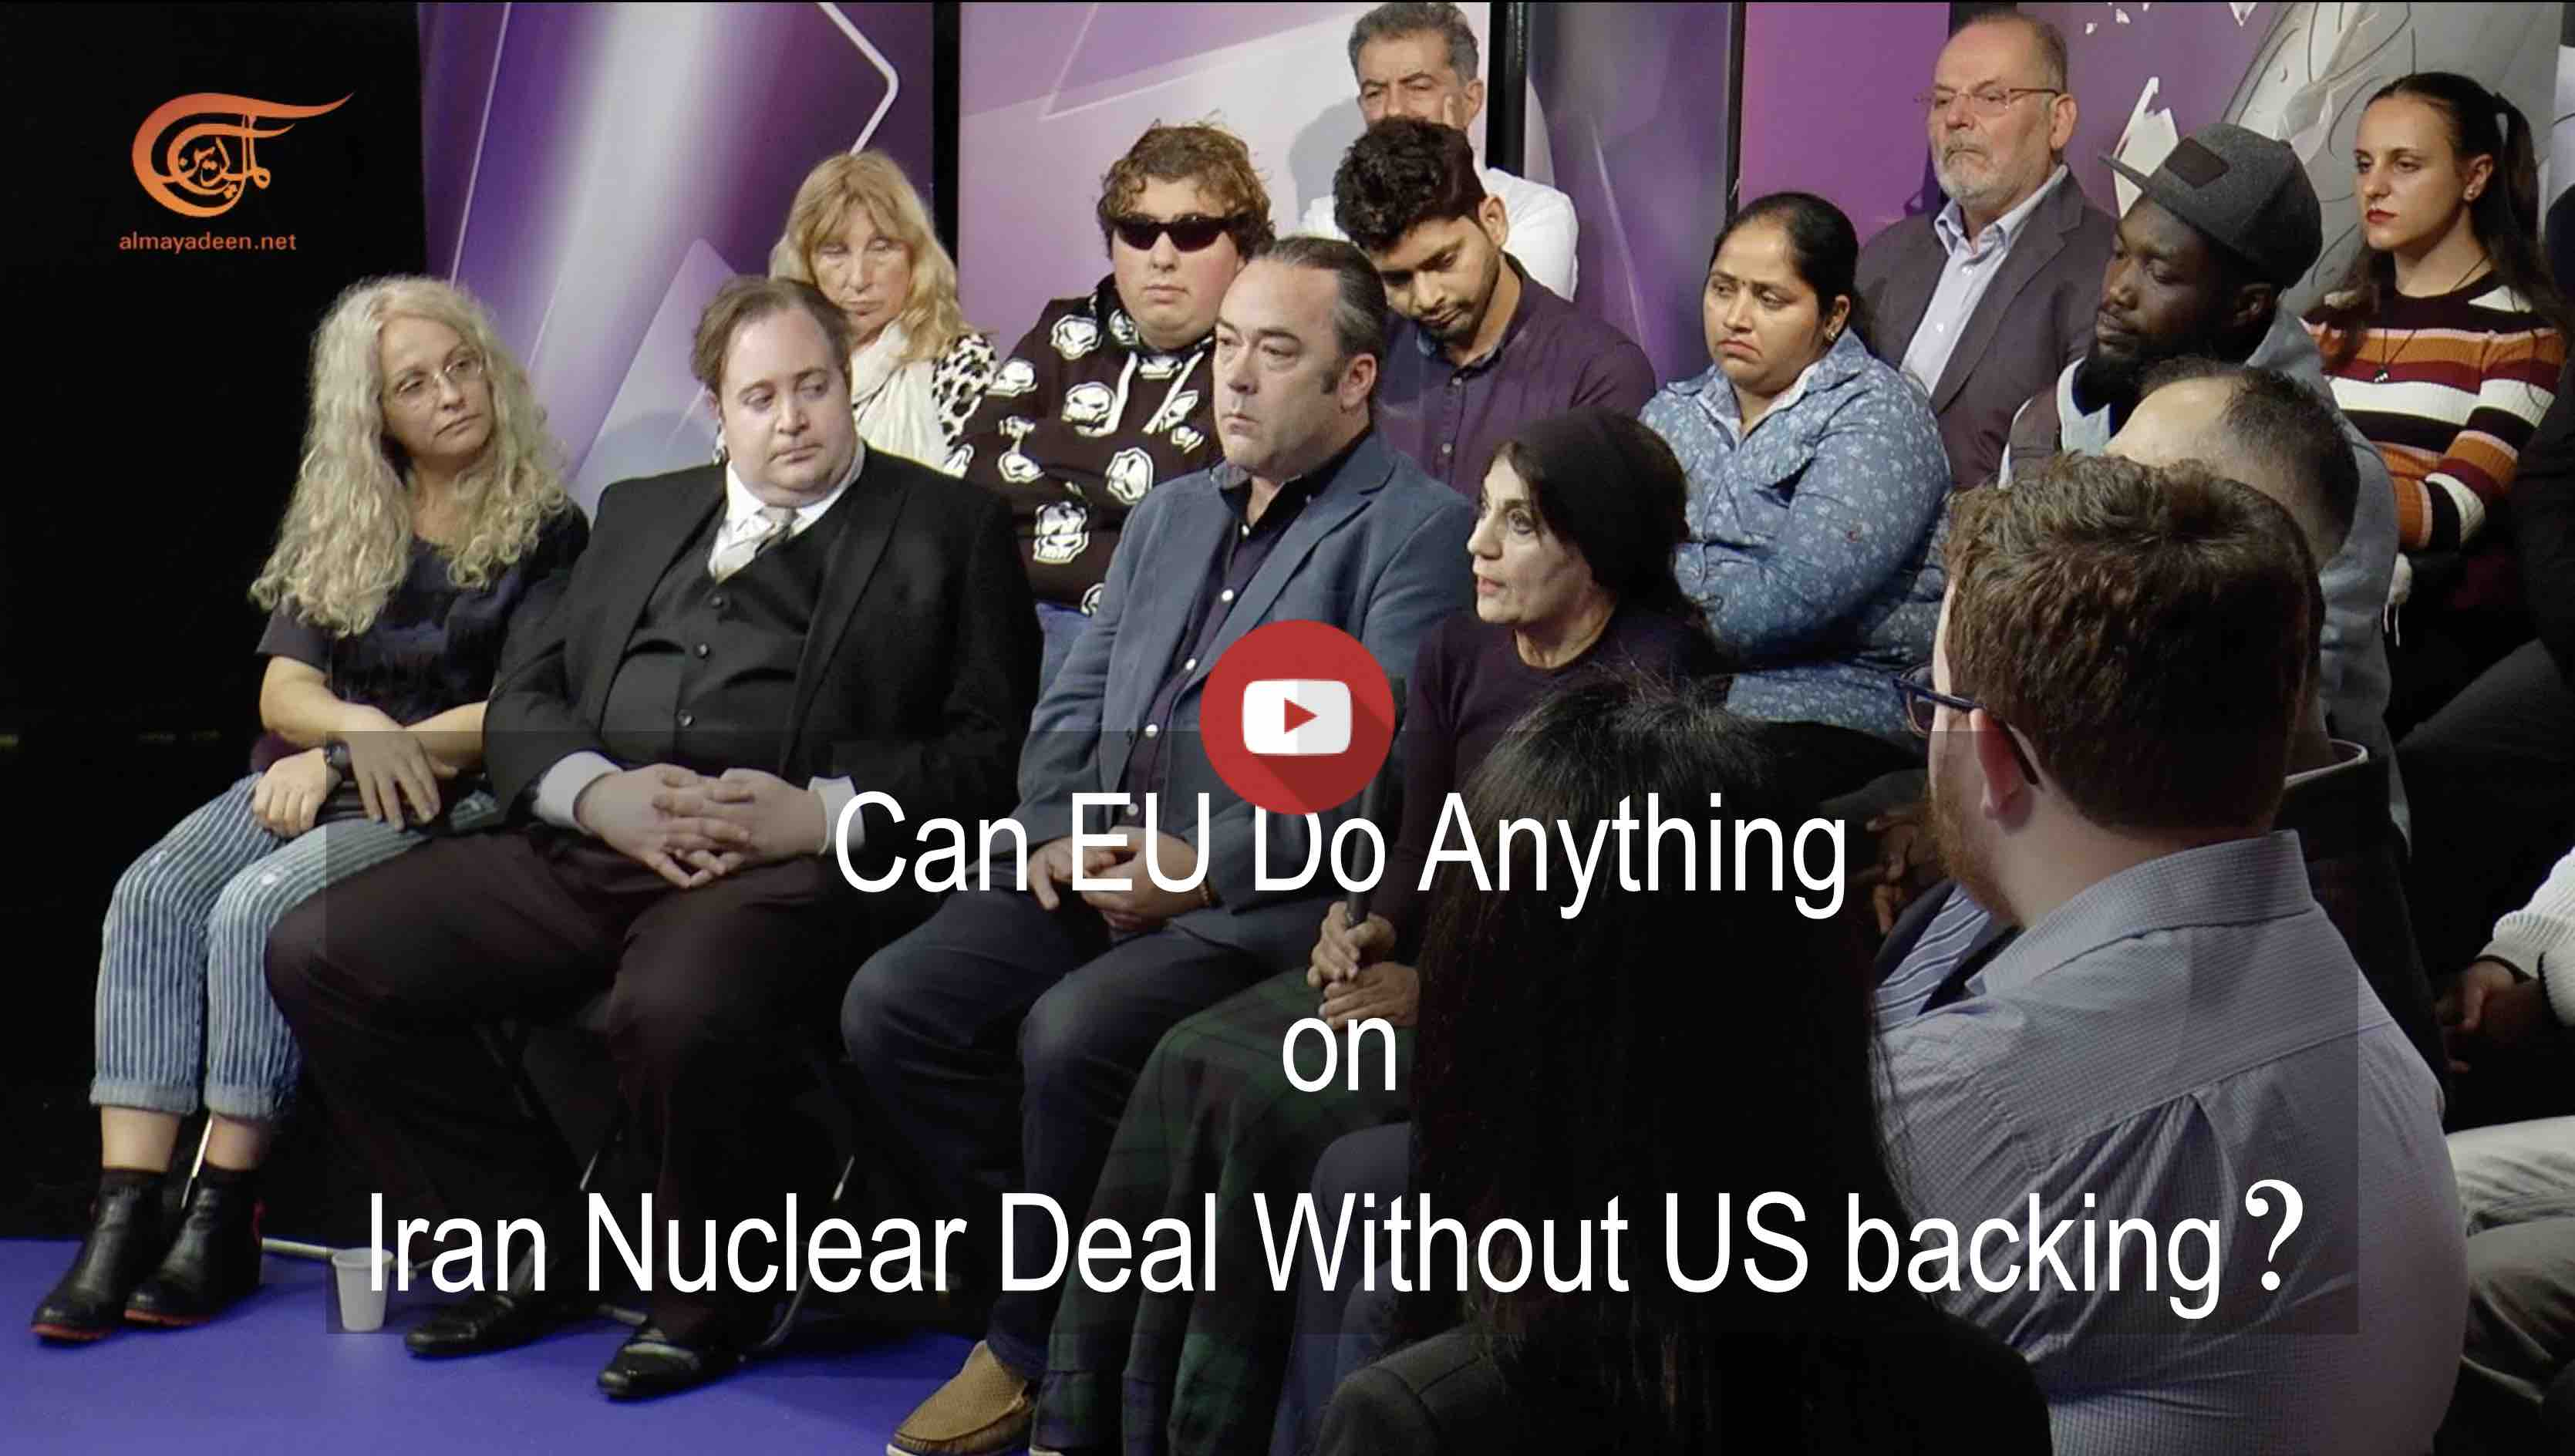 Can EU Do Anything on Iran Nuclear Deal (JCPOA) Without US backing? a Kalima Horra show with George Galloway - Narcissi Productions